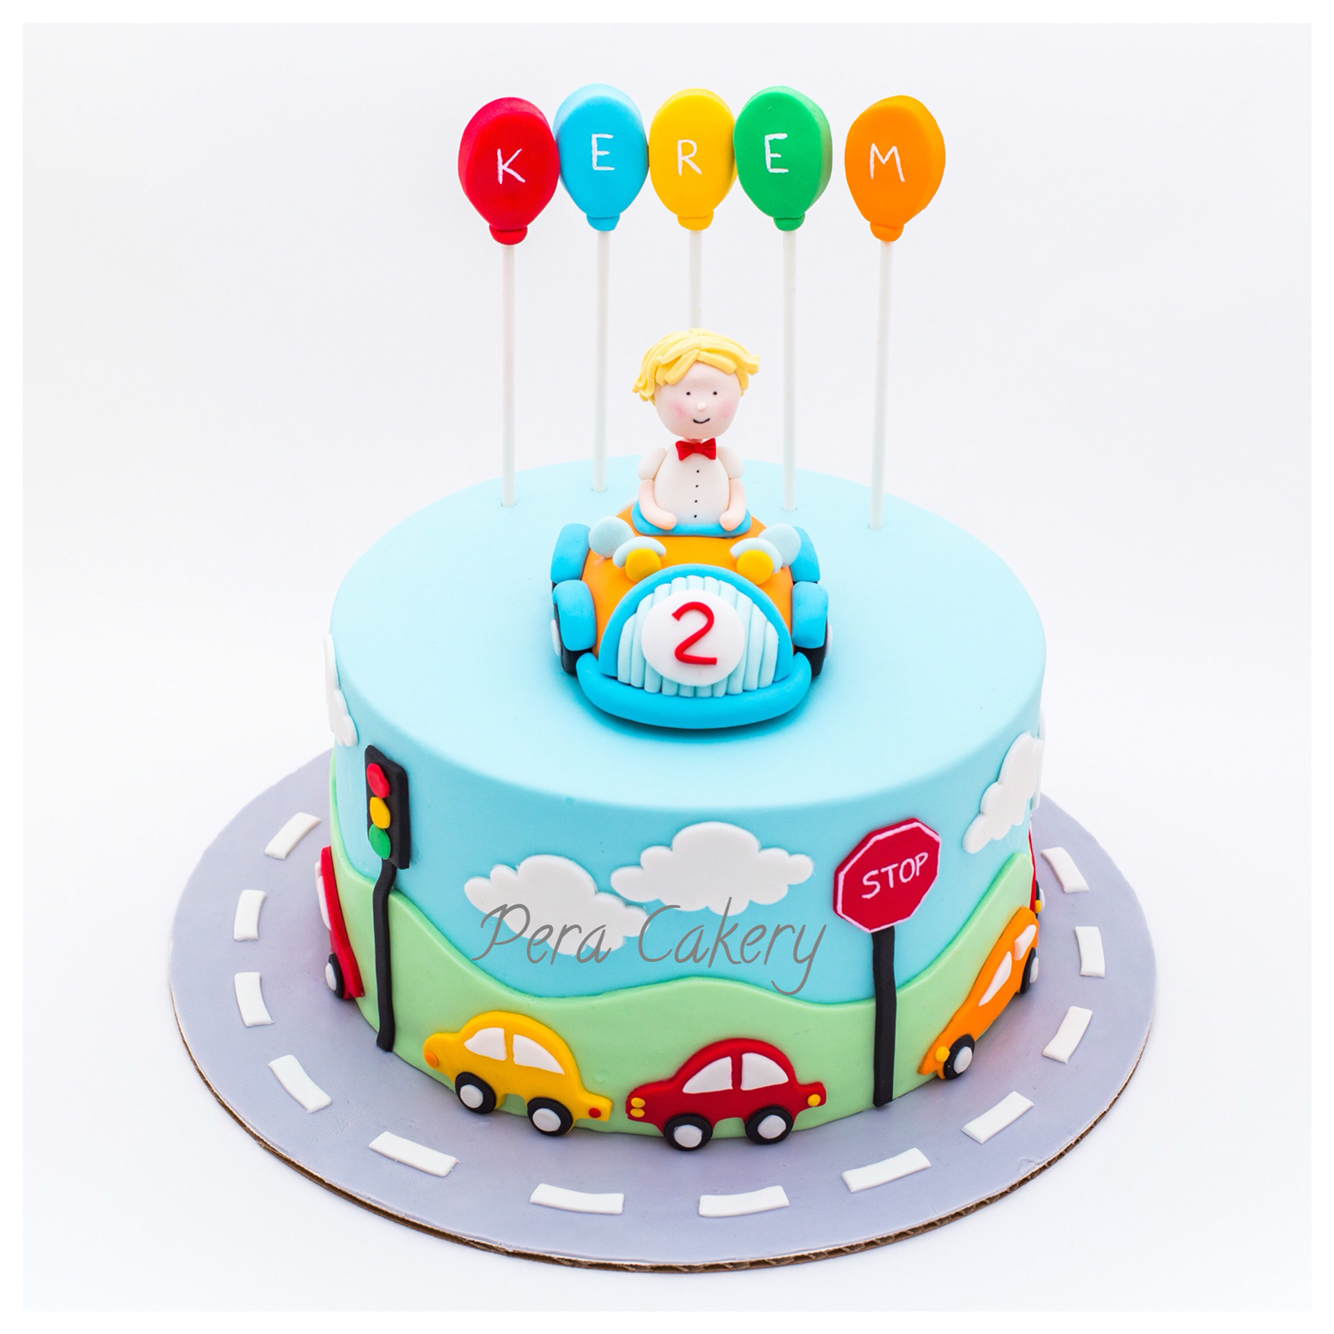 9 2 Year Old Boy Birthday Cakes Fondant Photo 2 Year Old Boy